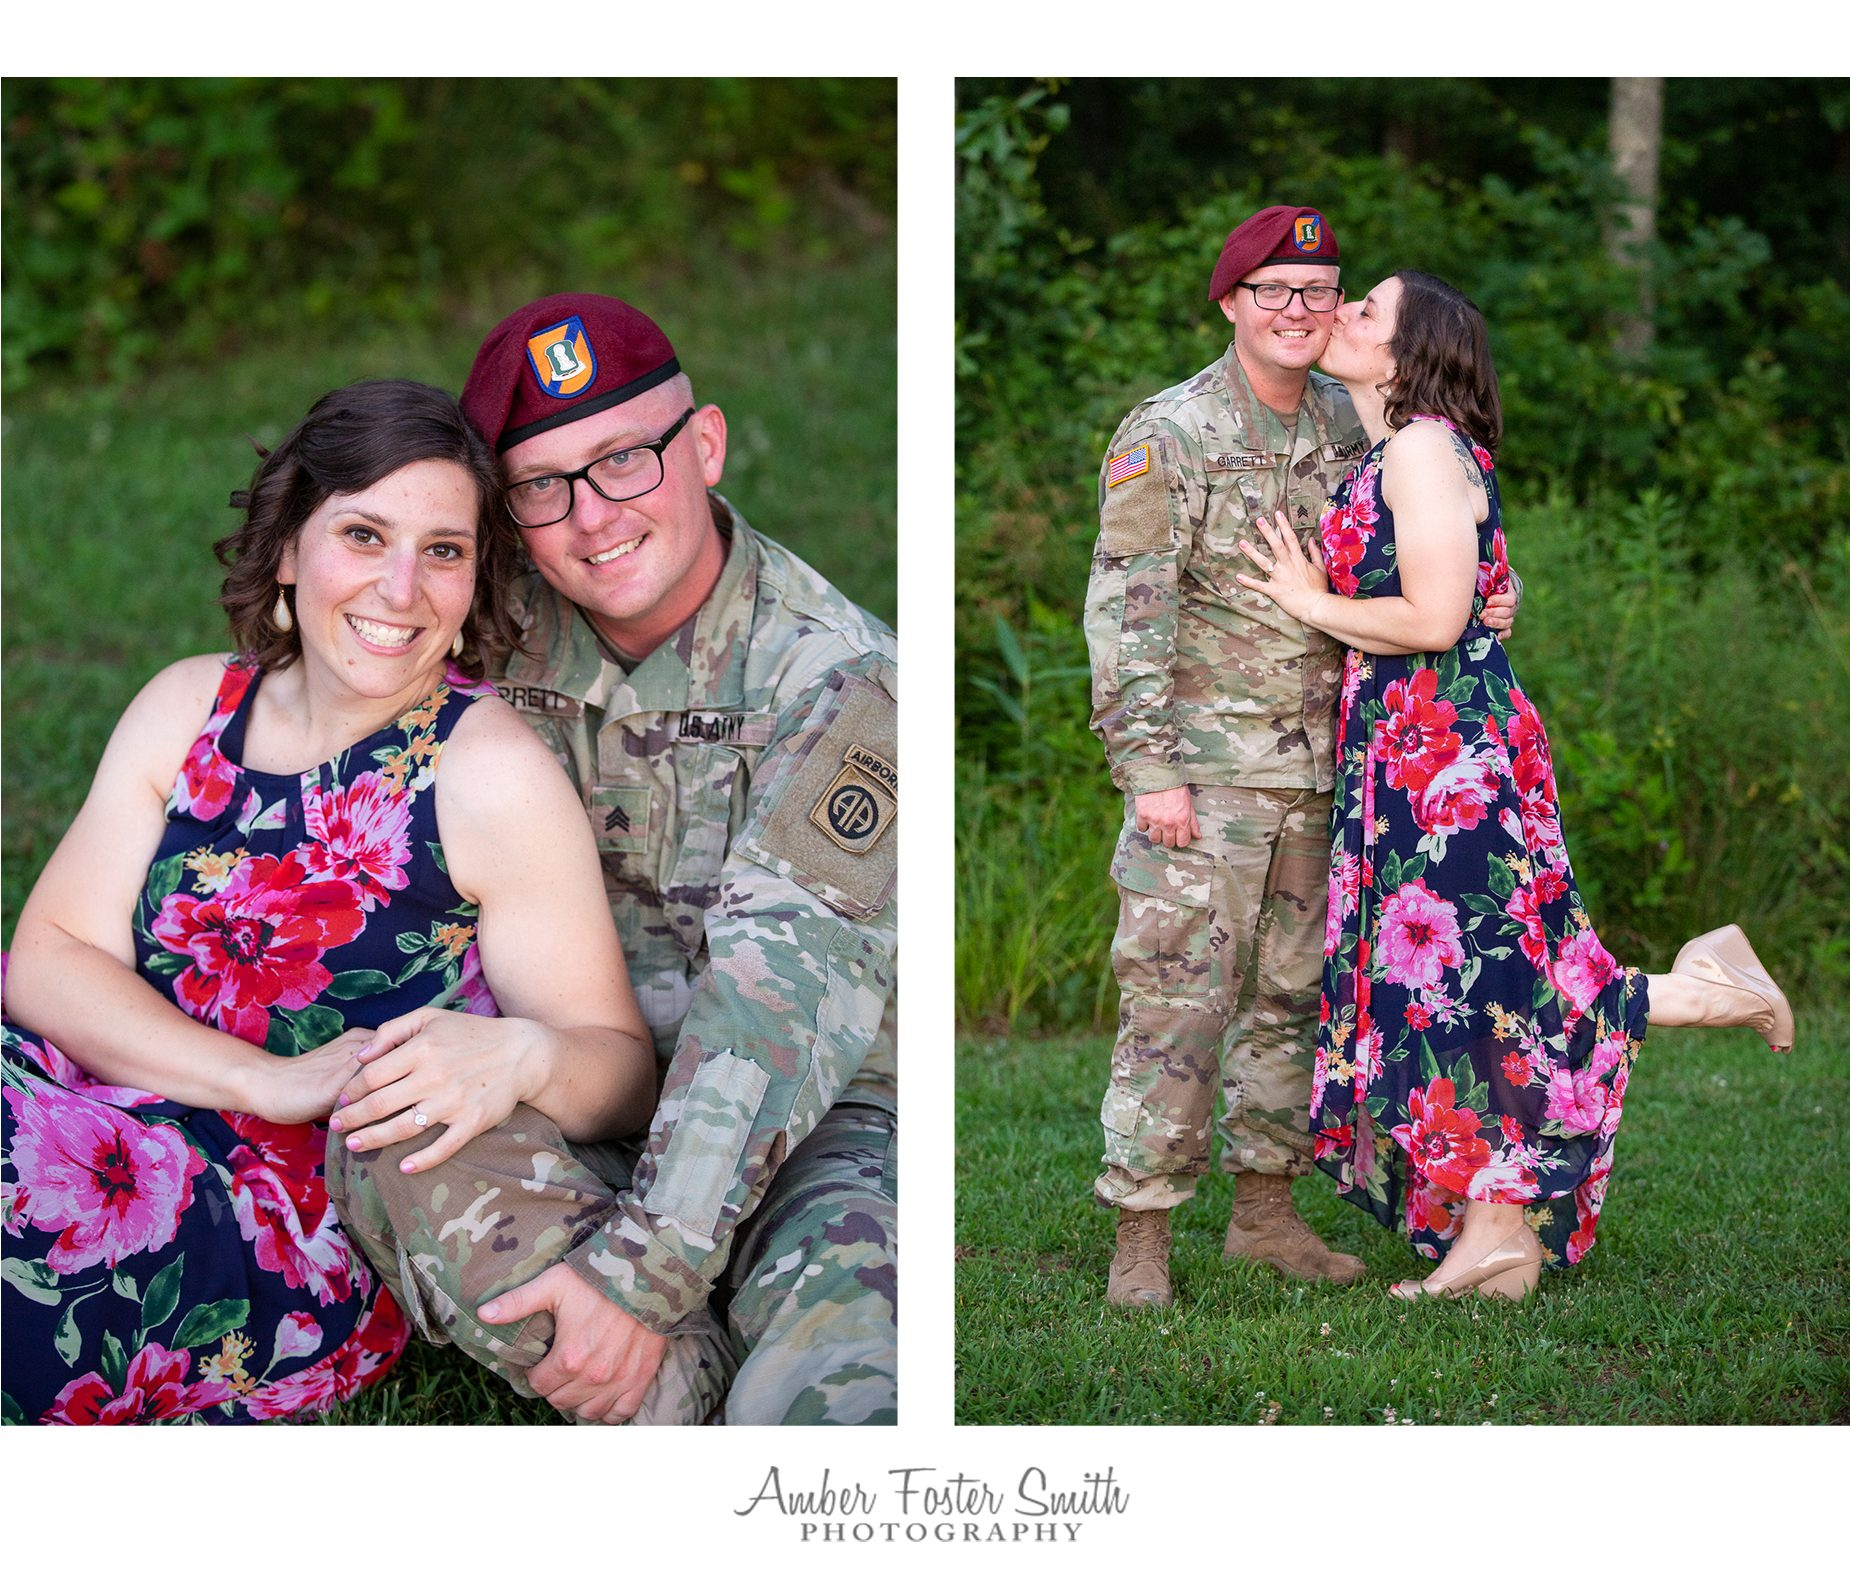 Amber Foster Smith Photography - Engagement Session Photography in Holly Springs